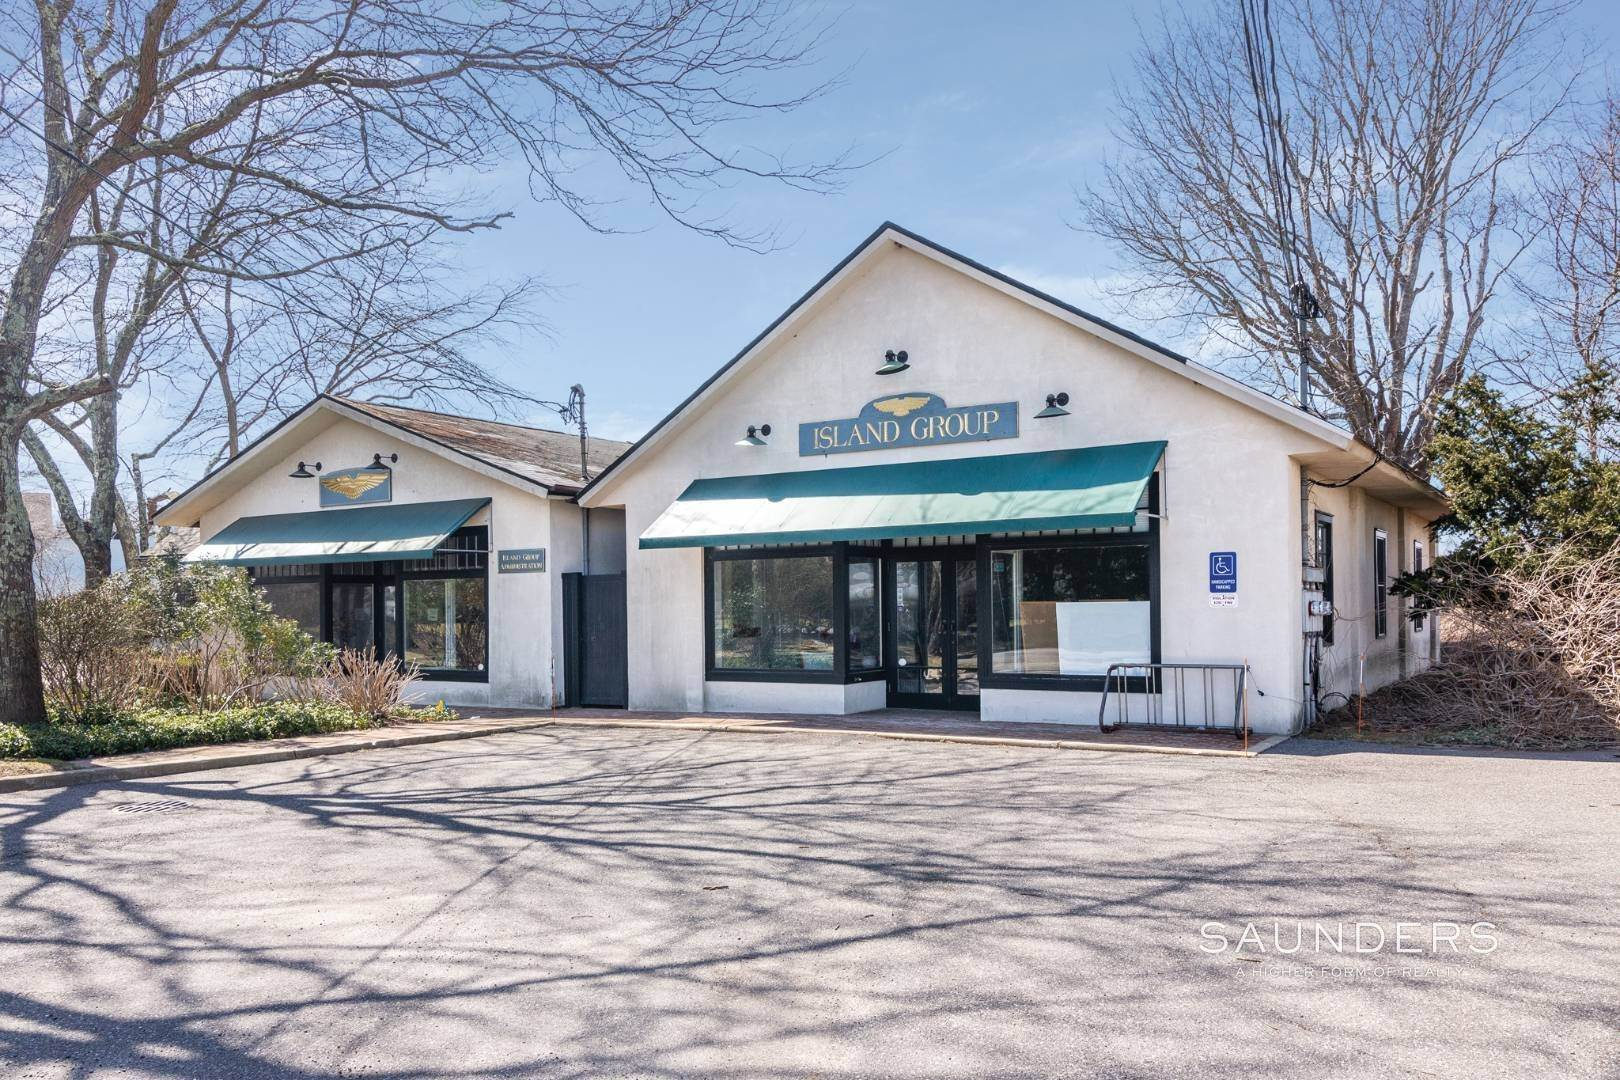 2. Commercial for Sale at East Hampton Village Commercial Property 5 Toilsome Lane, East Hampton, East Hampton Town, NY 11937